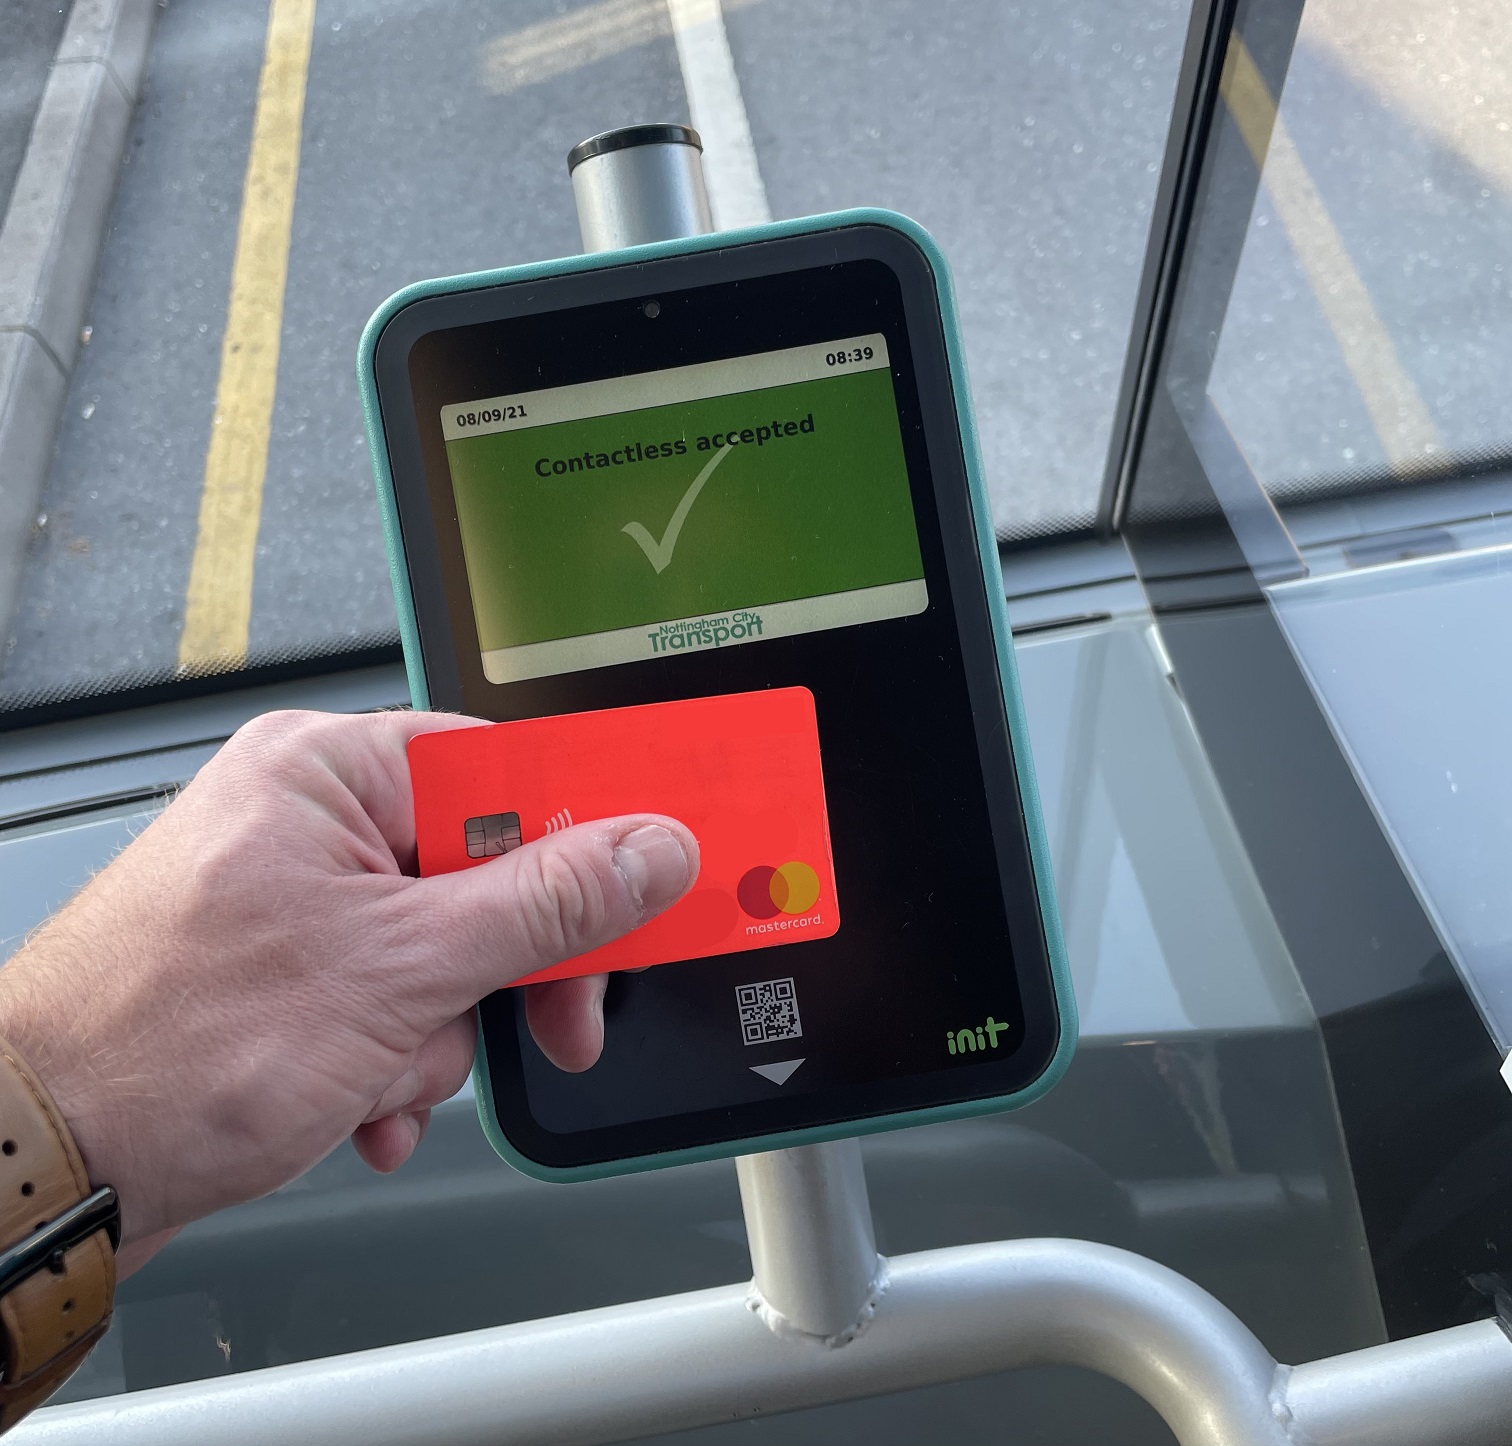 INIT EXTENDS CONTACTLESS TICKETING FOR NOTTINGHAM BUSES AND TRAMS